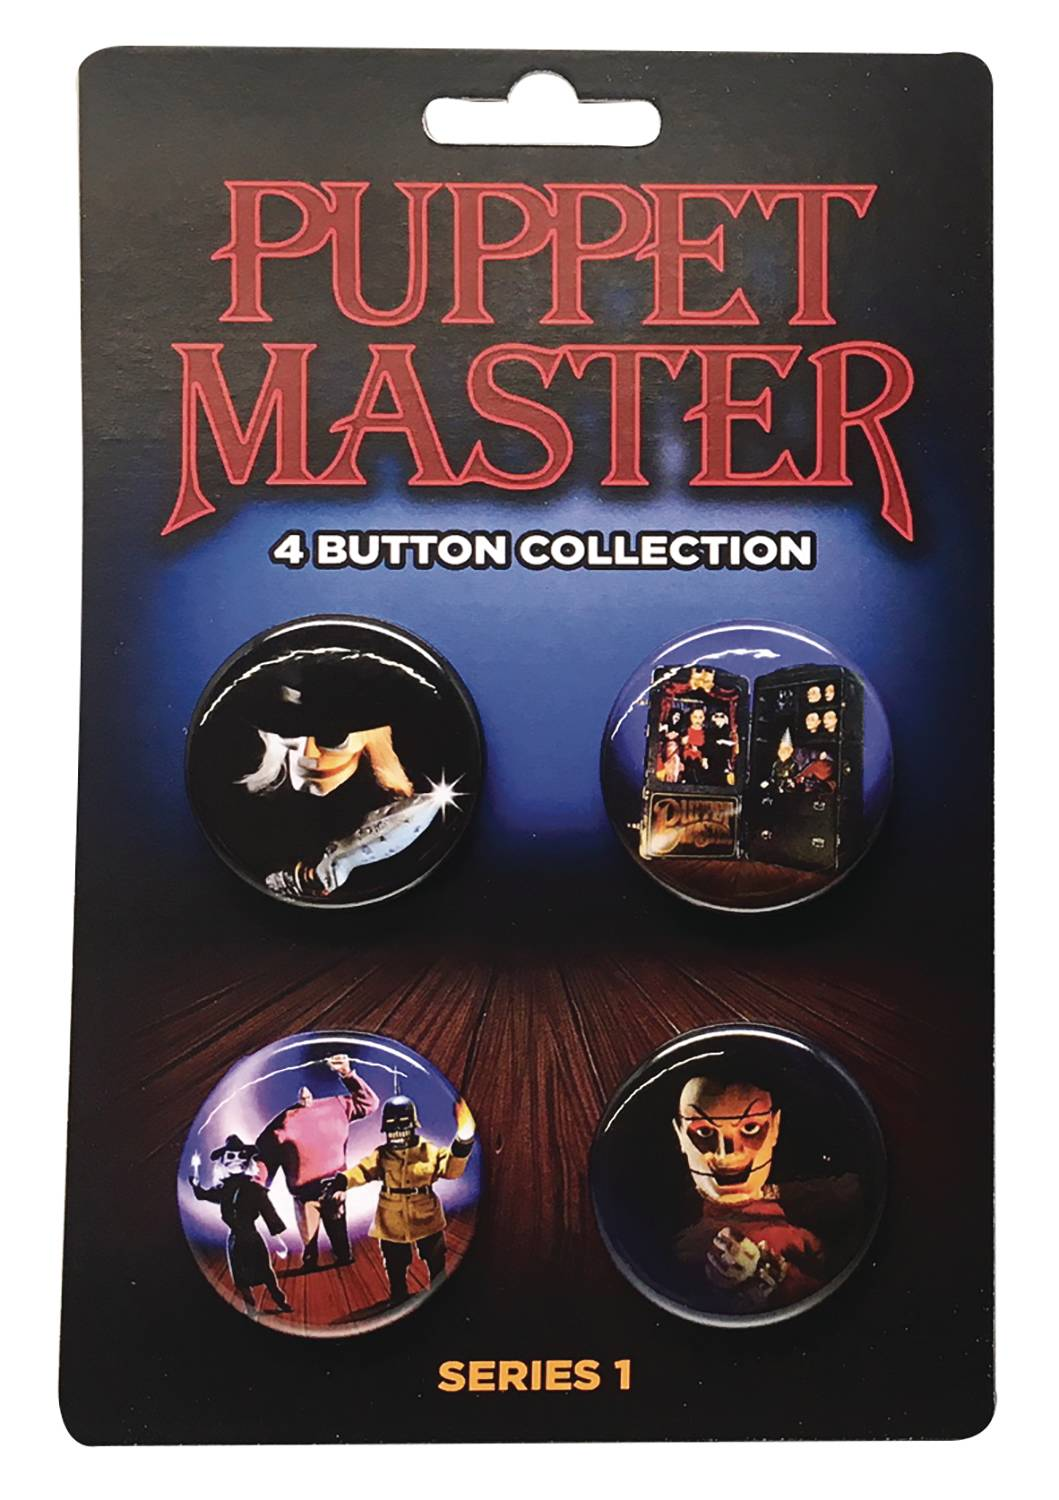 PUPPET MASTER BUTTON COLLECTION SER1 4PK